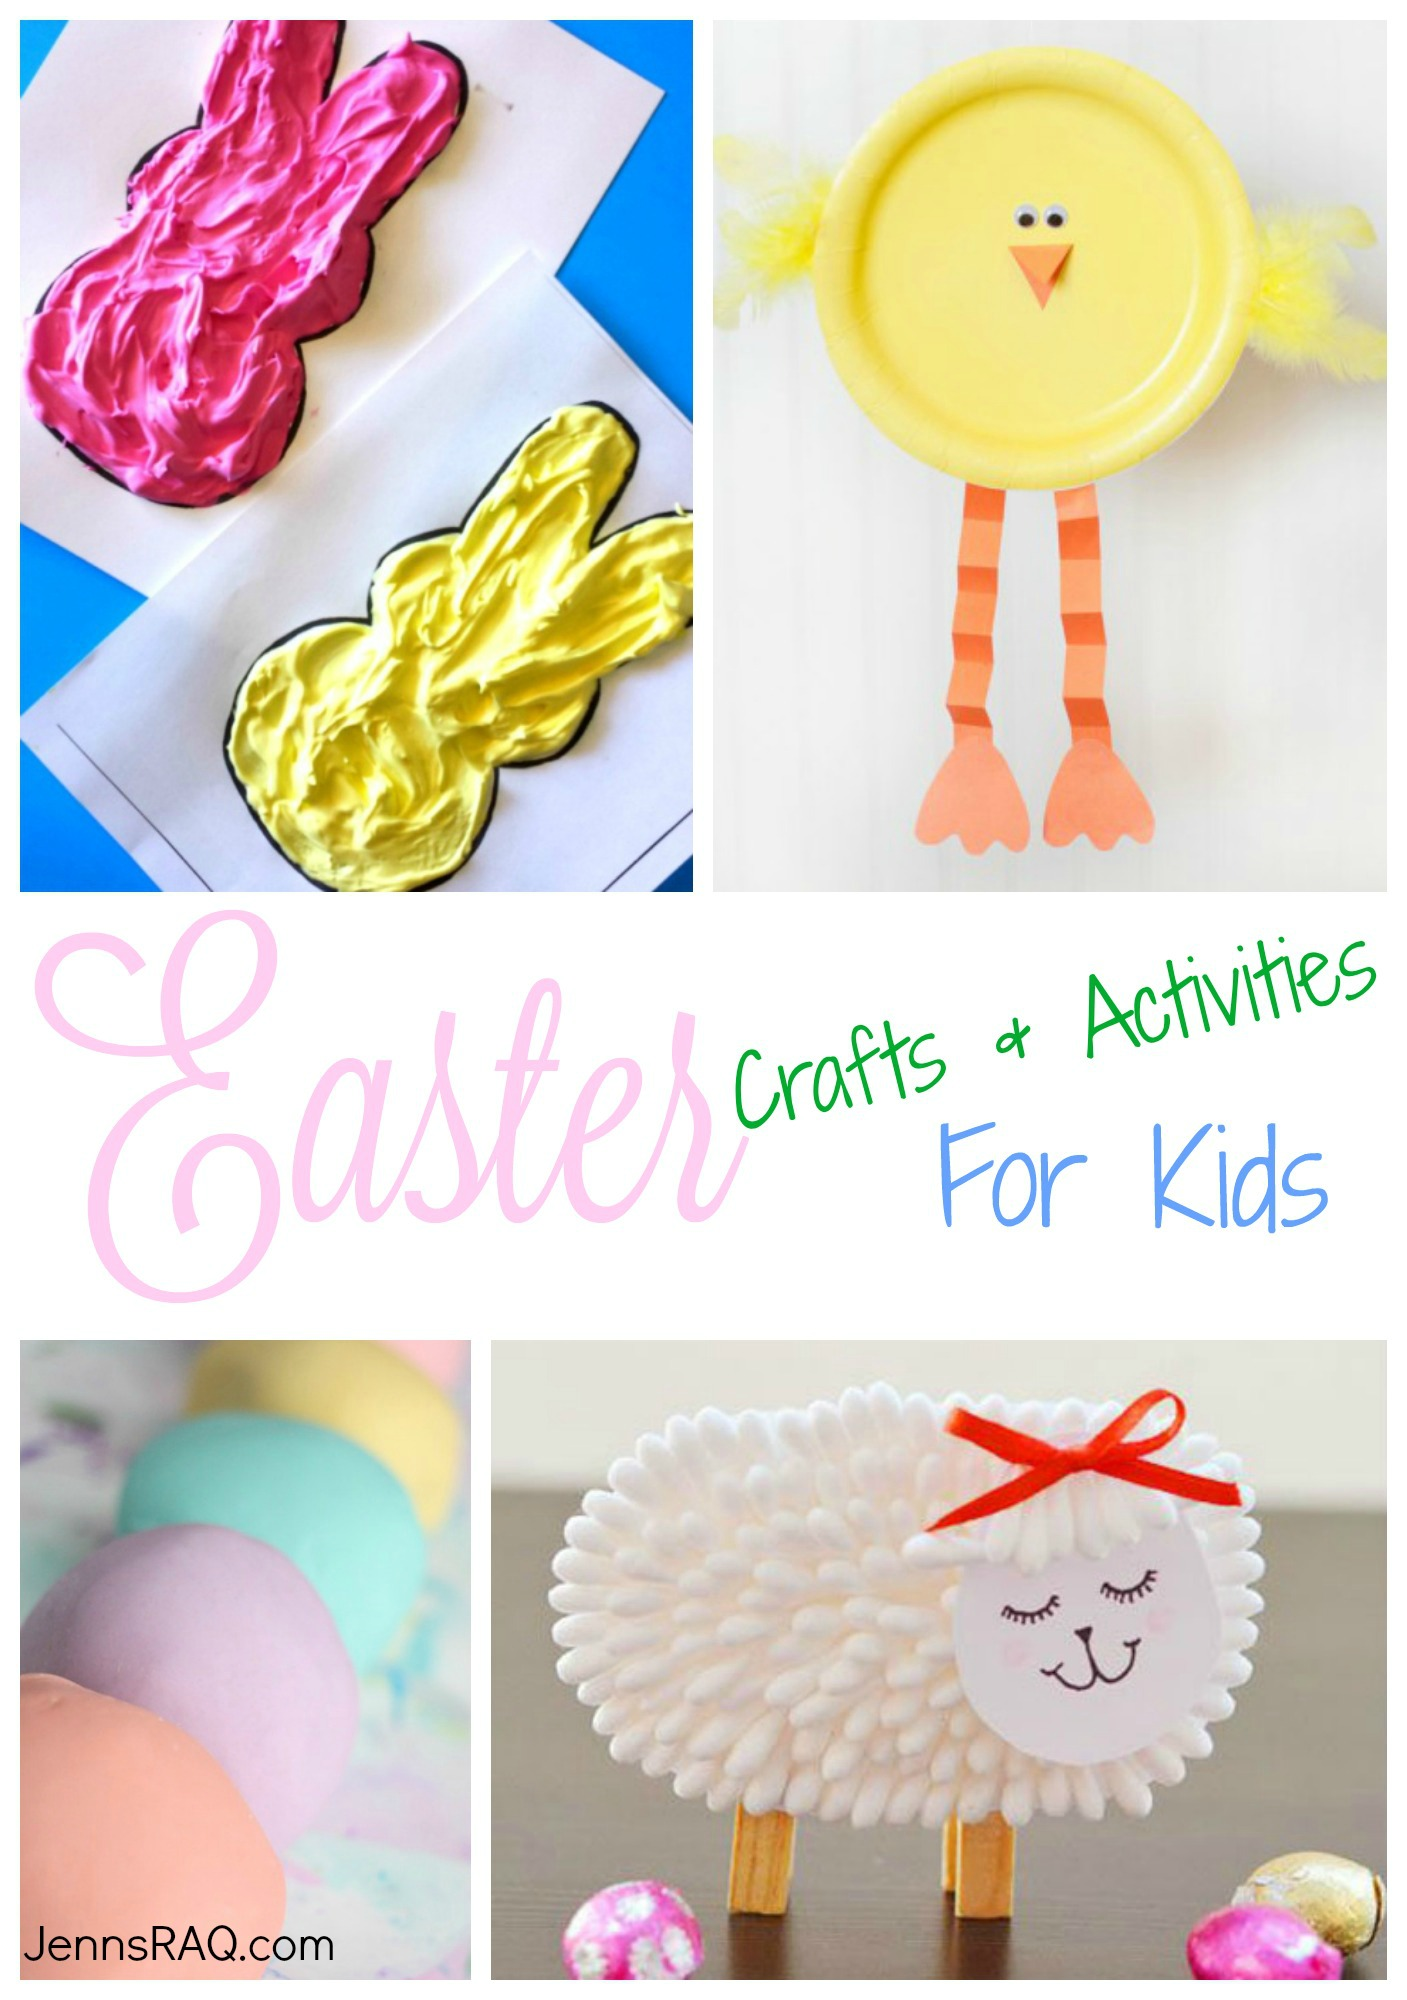 Easter Crafts and Activities for Kids as seen on JennsRAQ.com